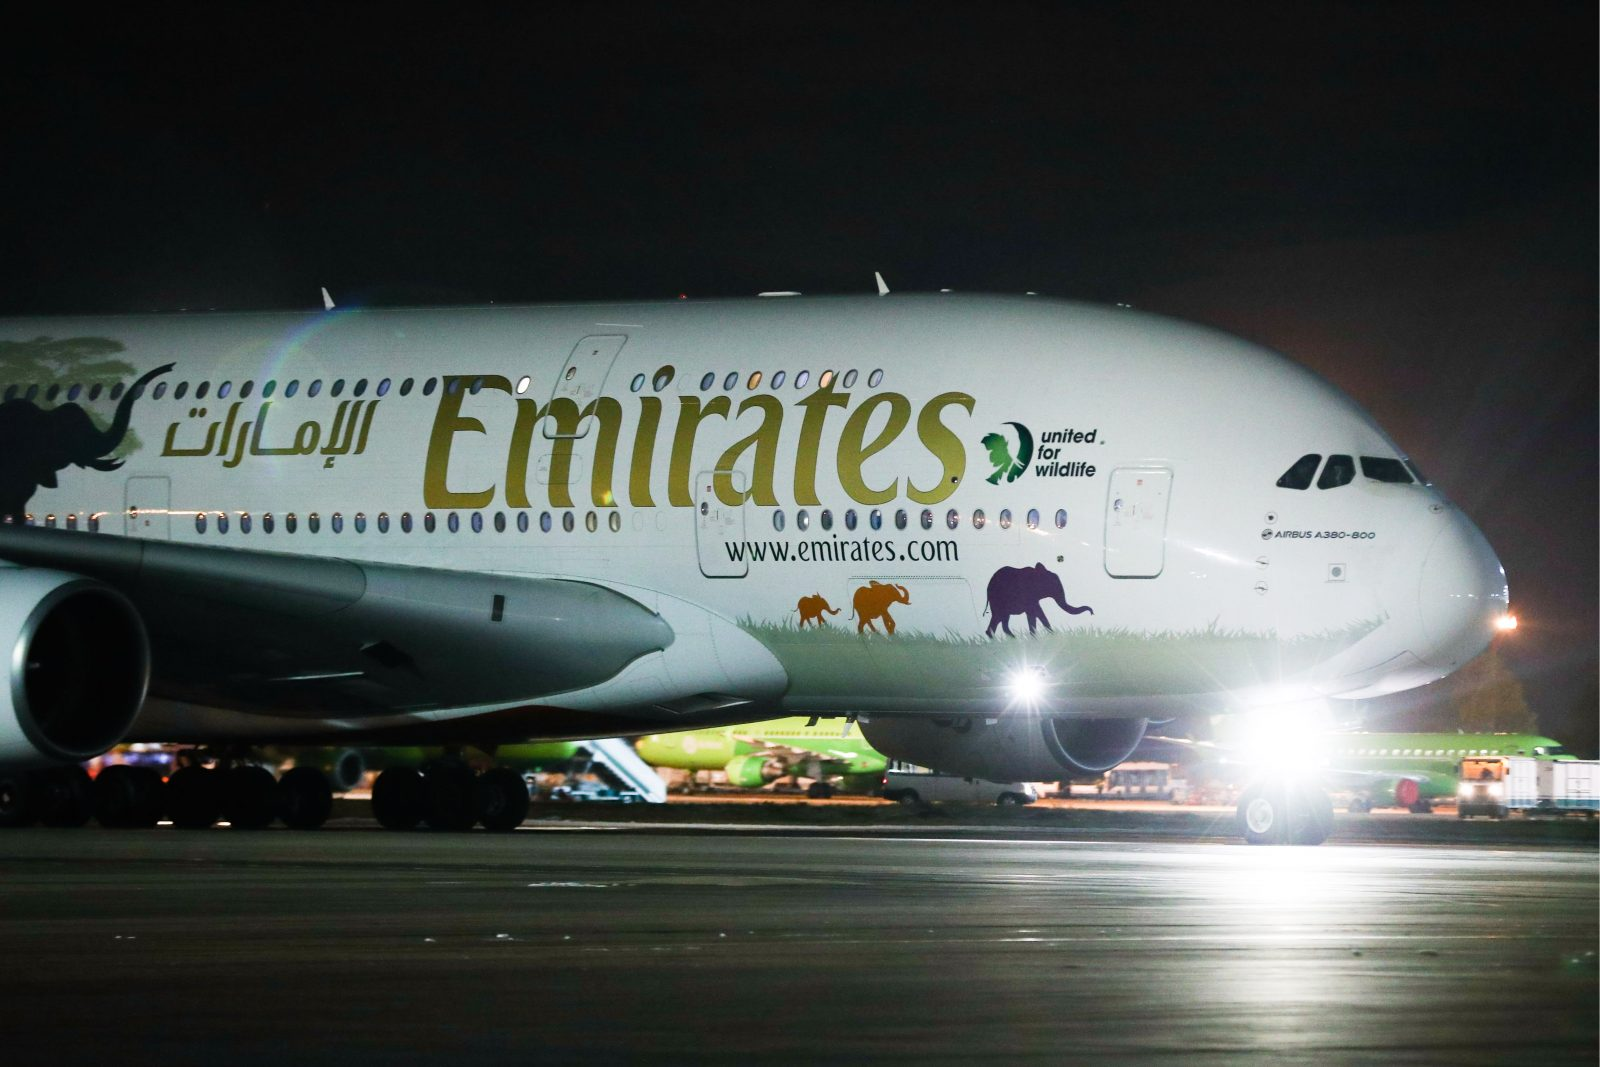 Emirates announces order for 50 Airbus A350 jets